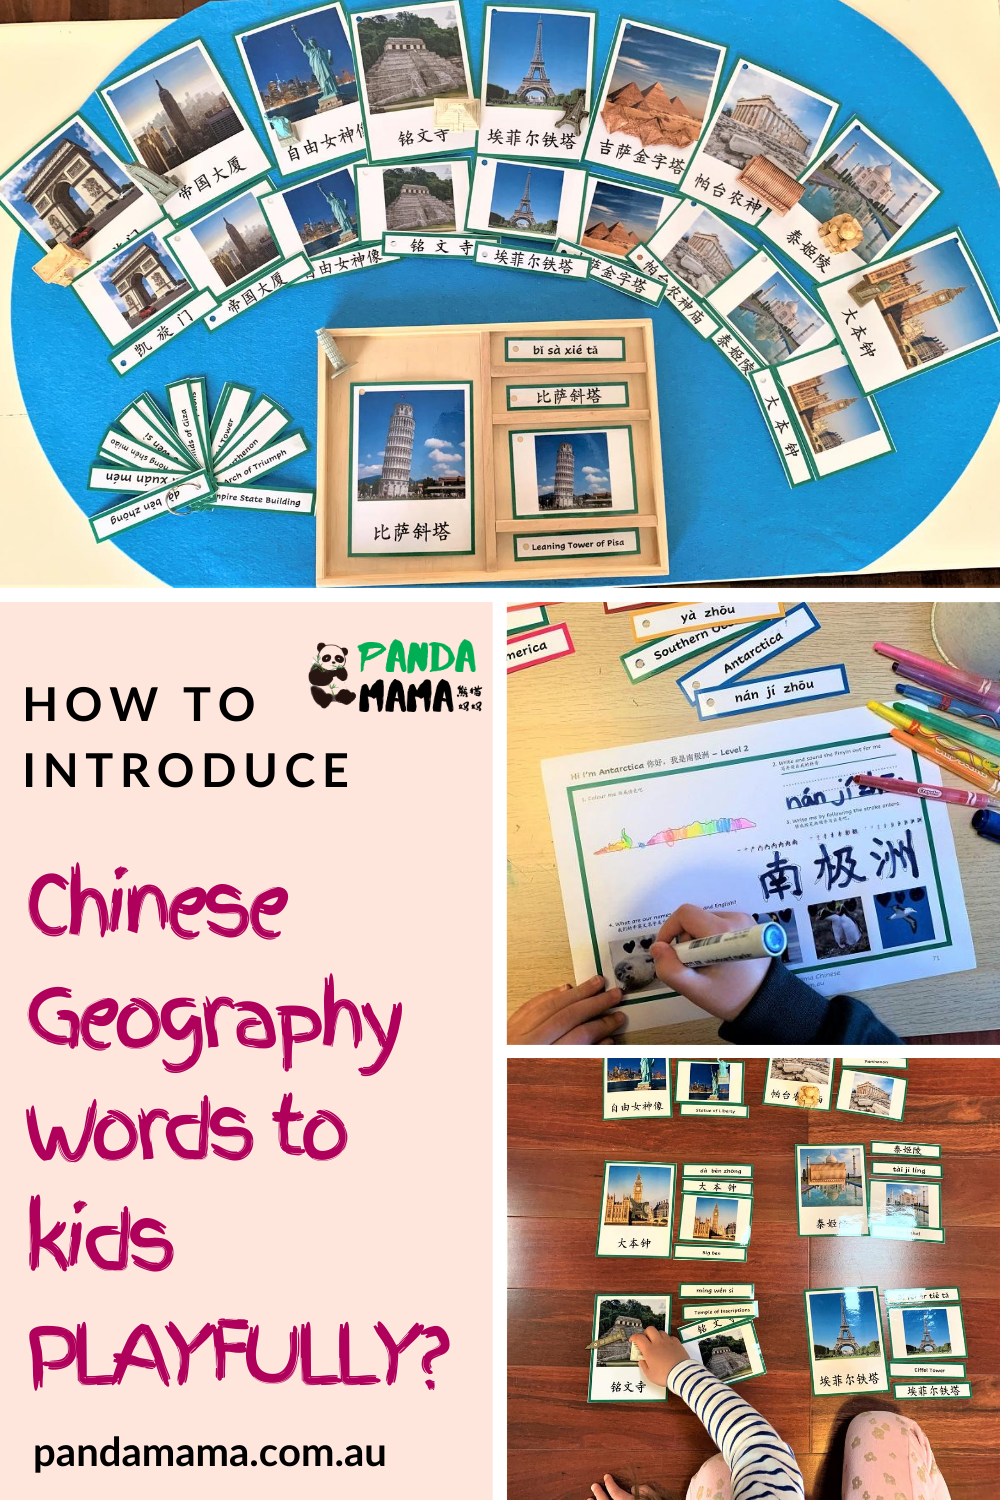 How to introduce Chinese geography words to kids playfully